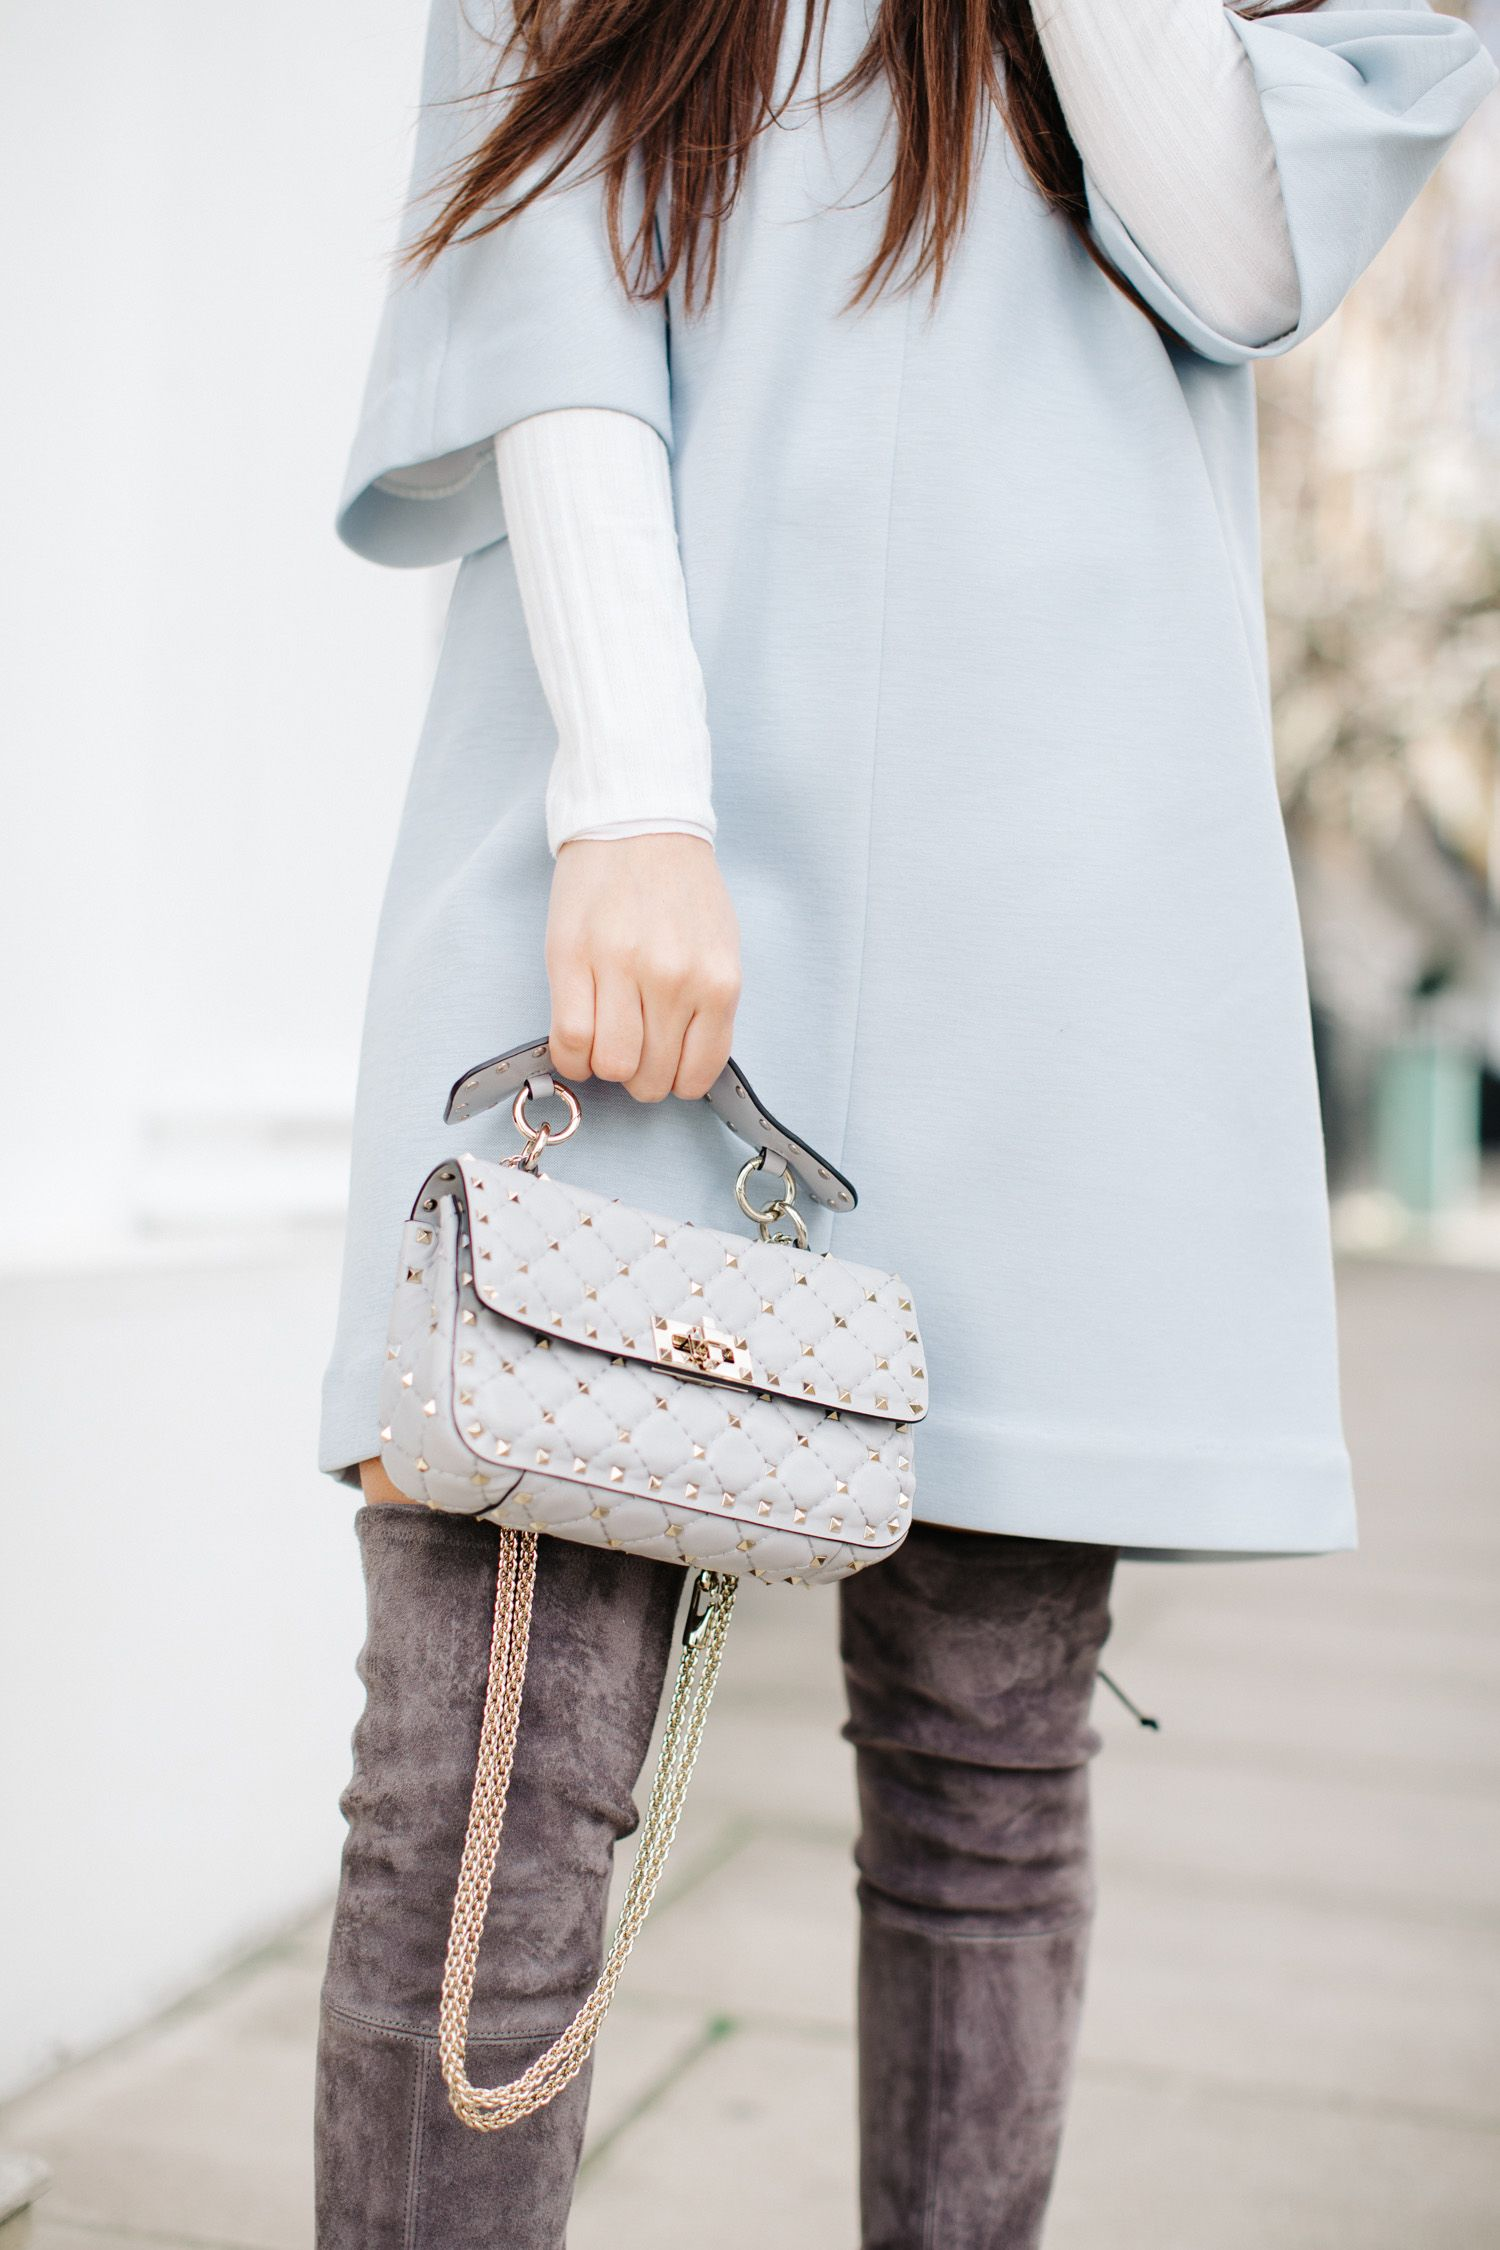 fa693efc54b valentino-rockstud-spike-small-leather-bag -grey-stuart-weitzman-lowland-over-the-knee-boots-londra-grey-hm-trend-light -blue-dress-5